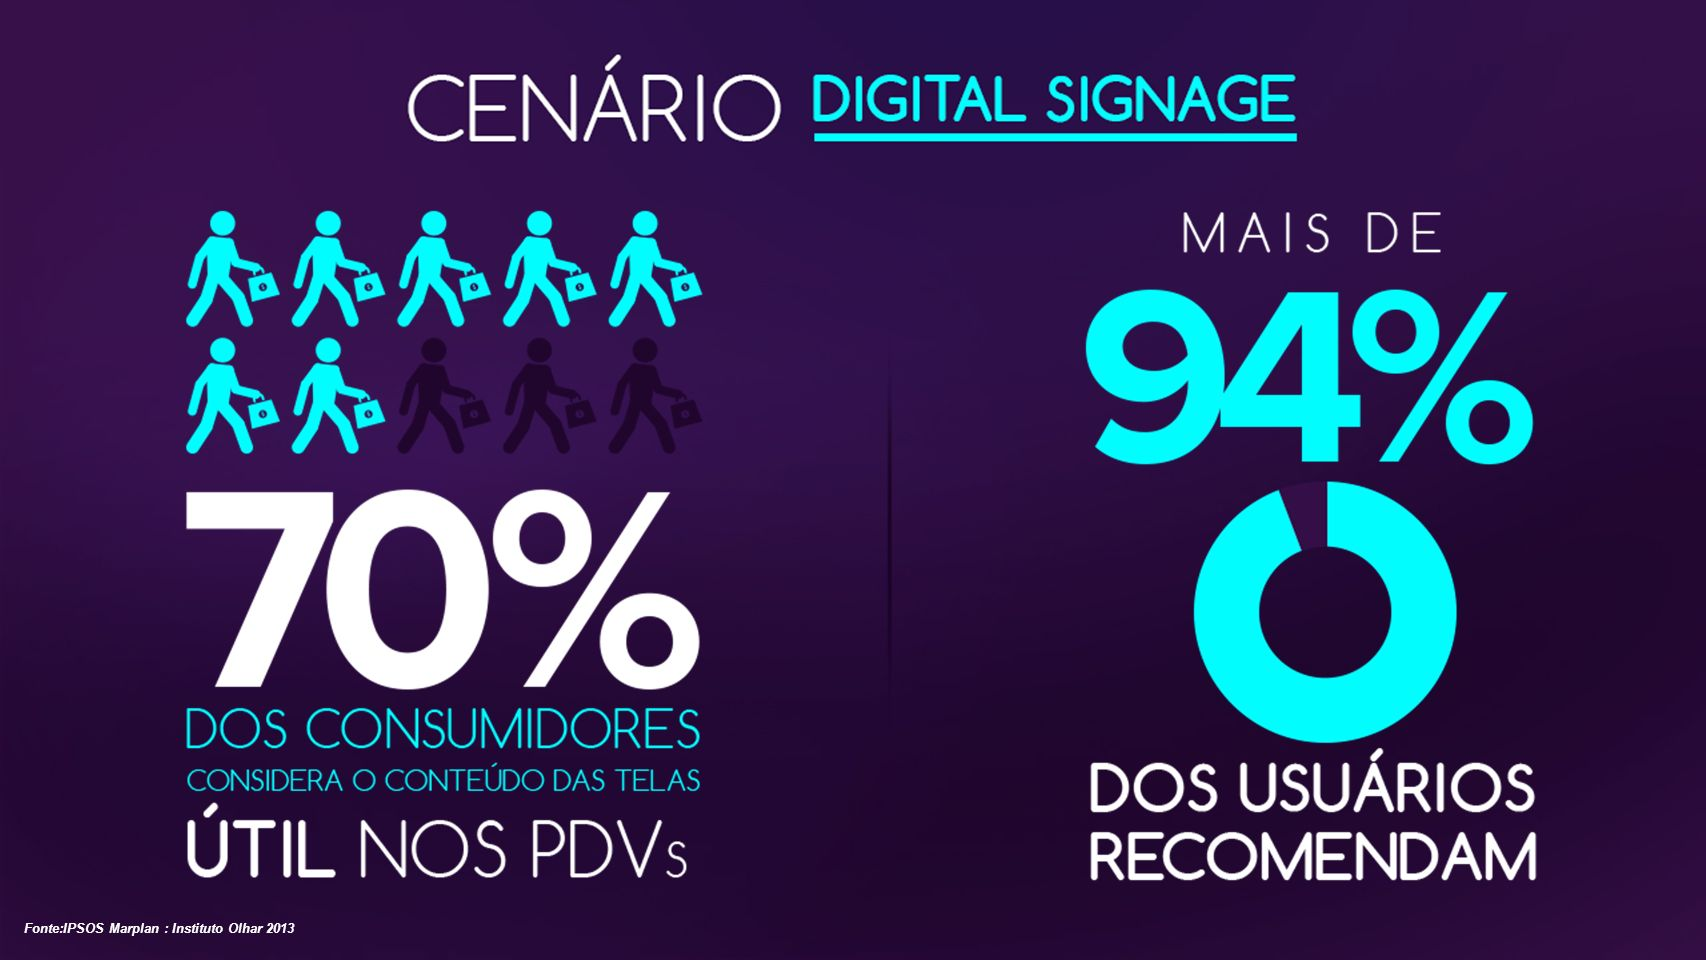 Fonte:IPSOS Marplan : Instituto Olhar 2013